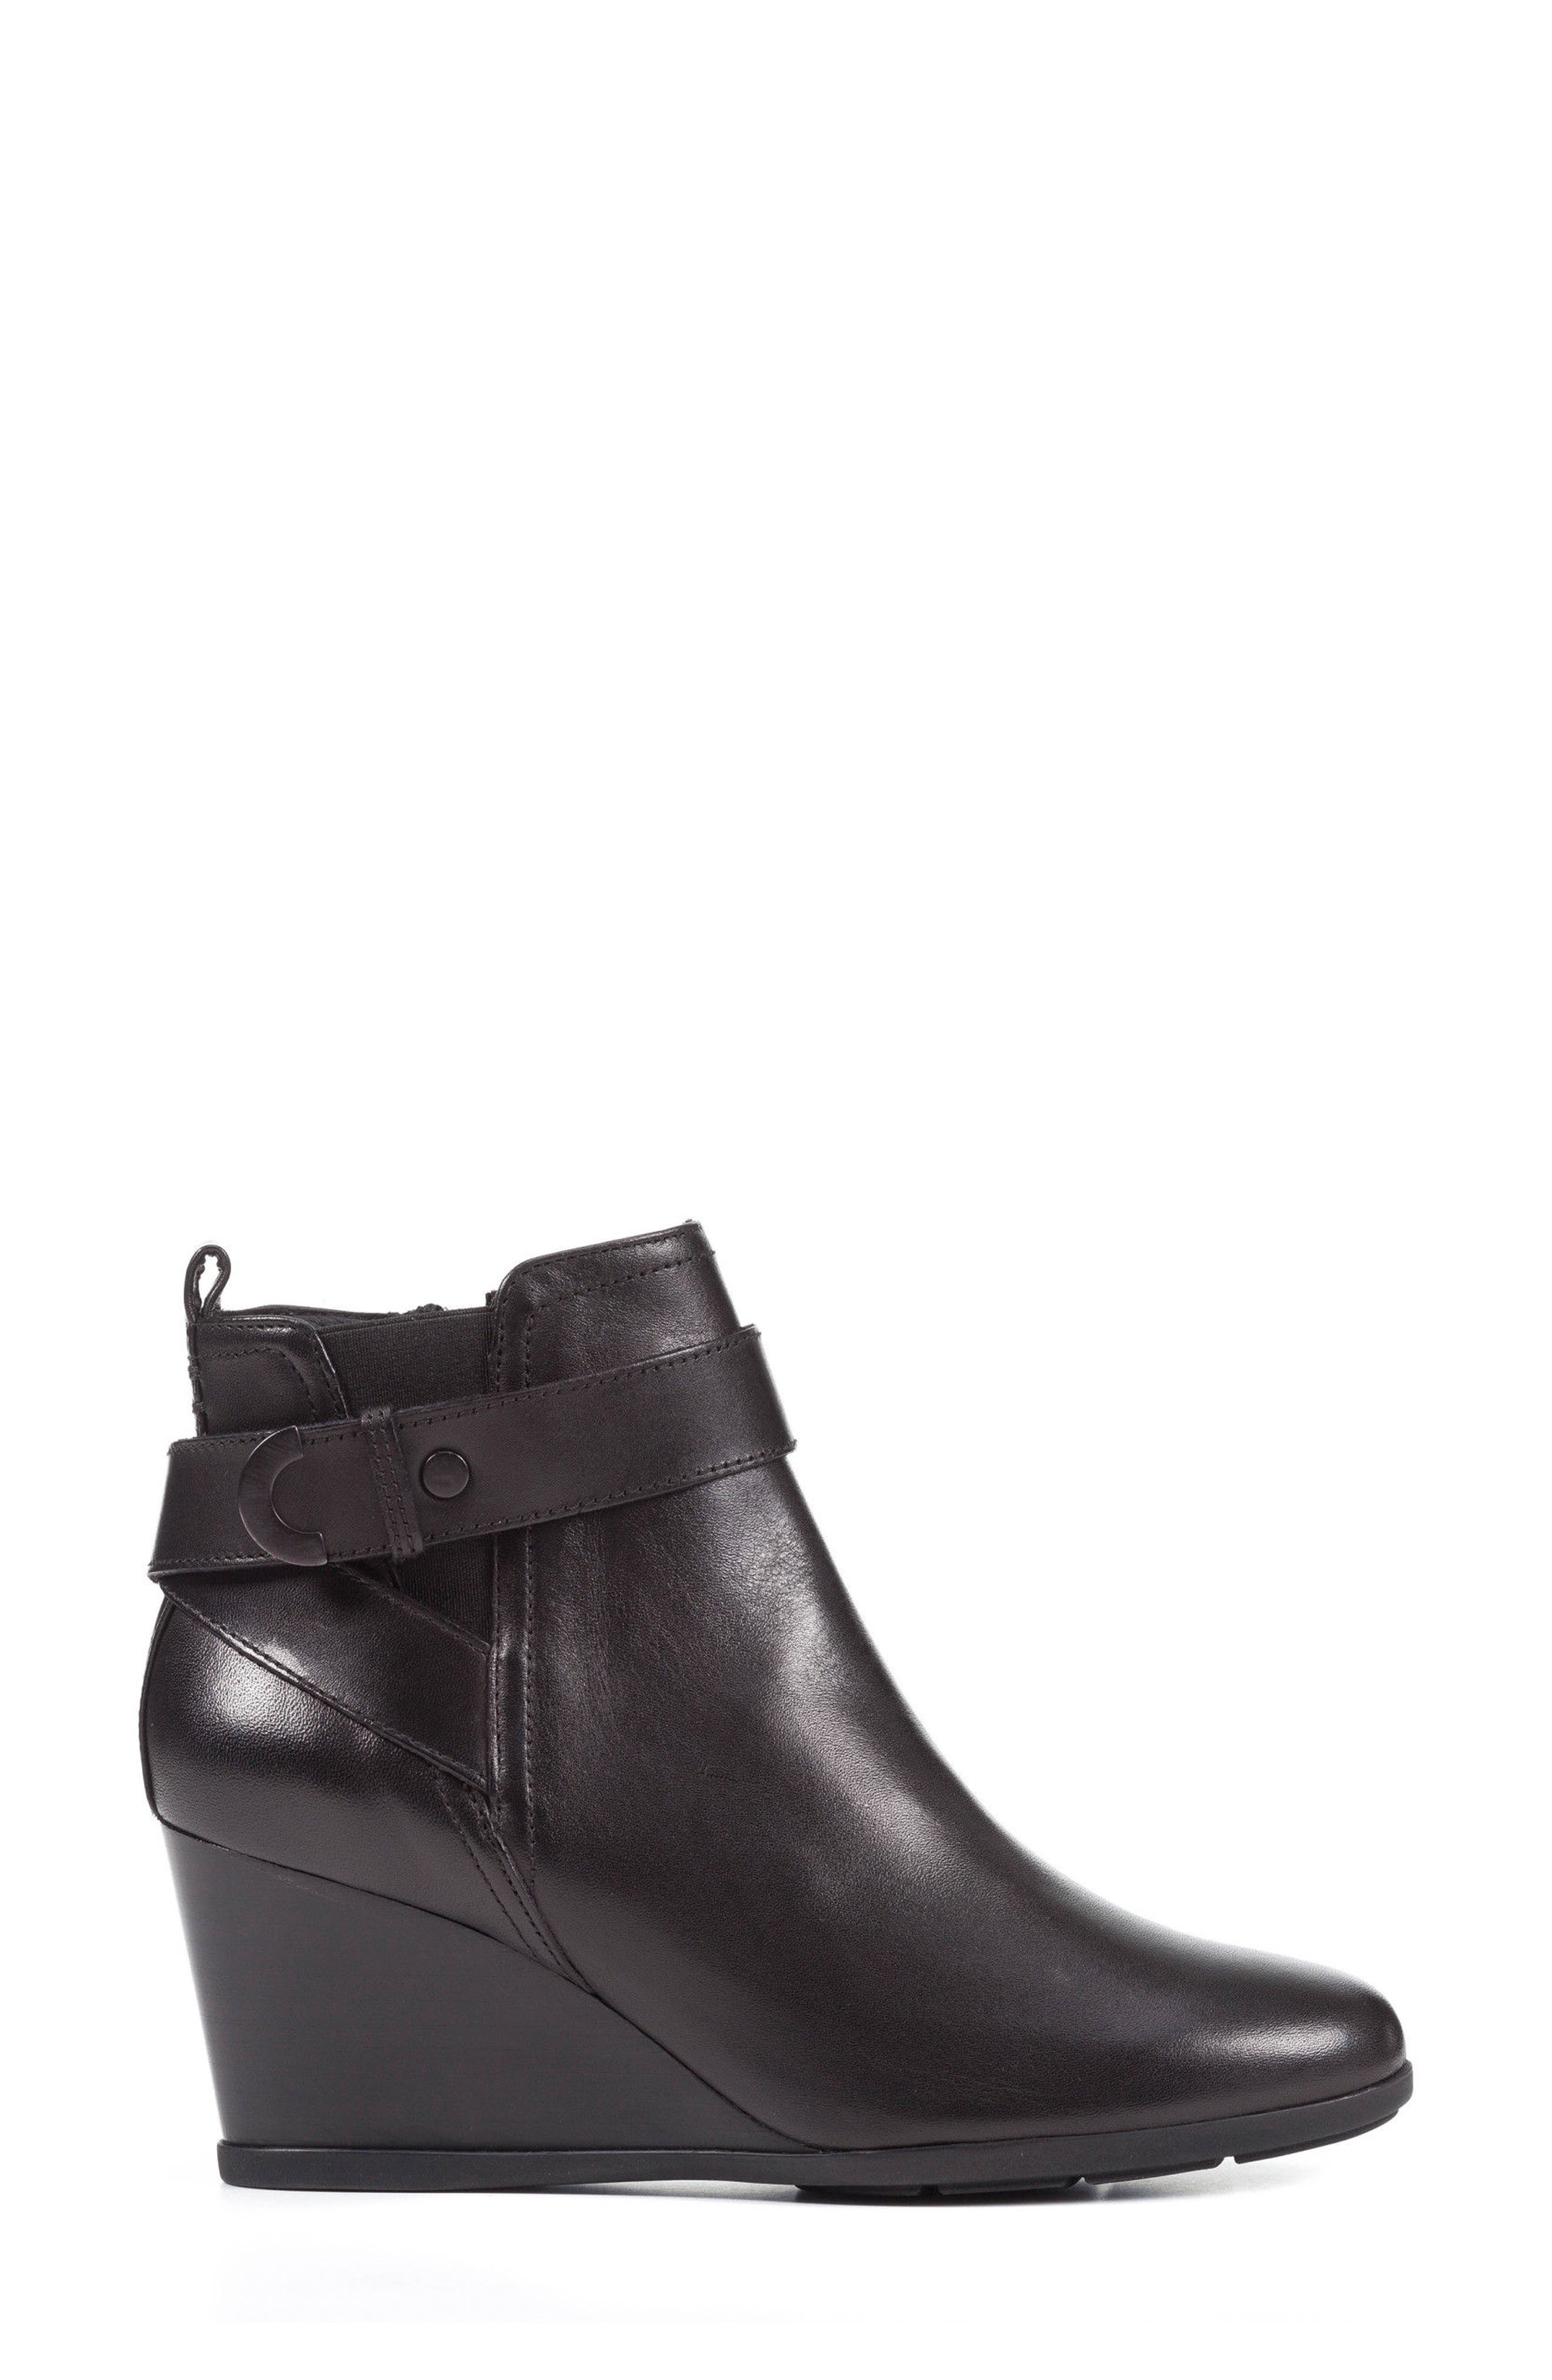 Inspiration Buckle Wedge Bootie,                             Alternate thumbnail 3, color,                             001